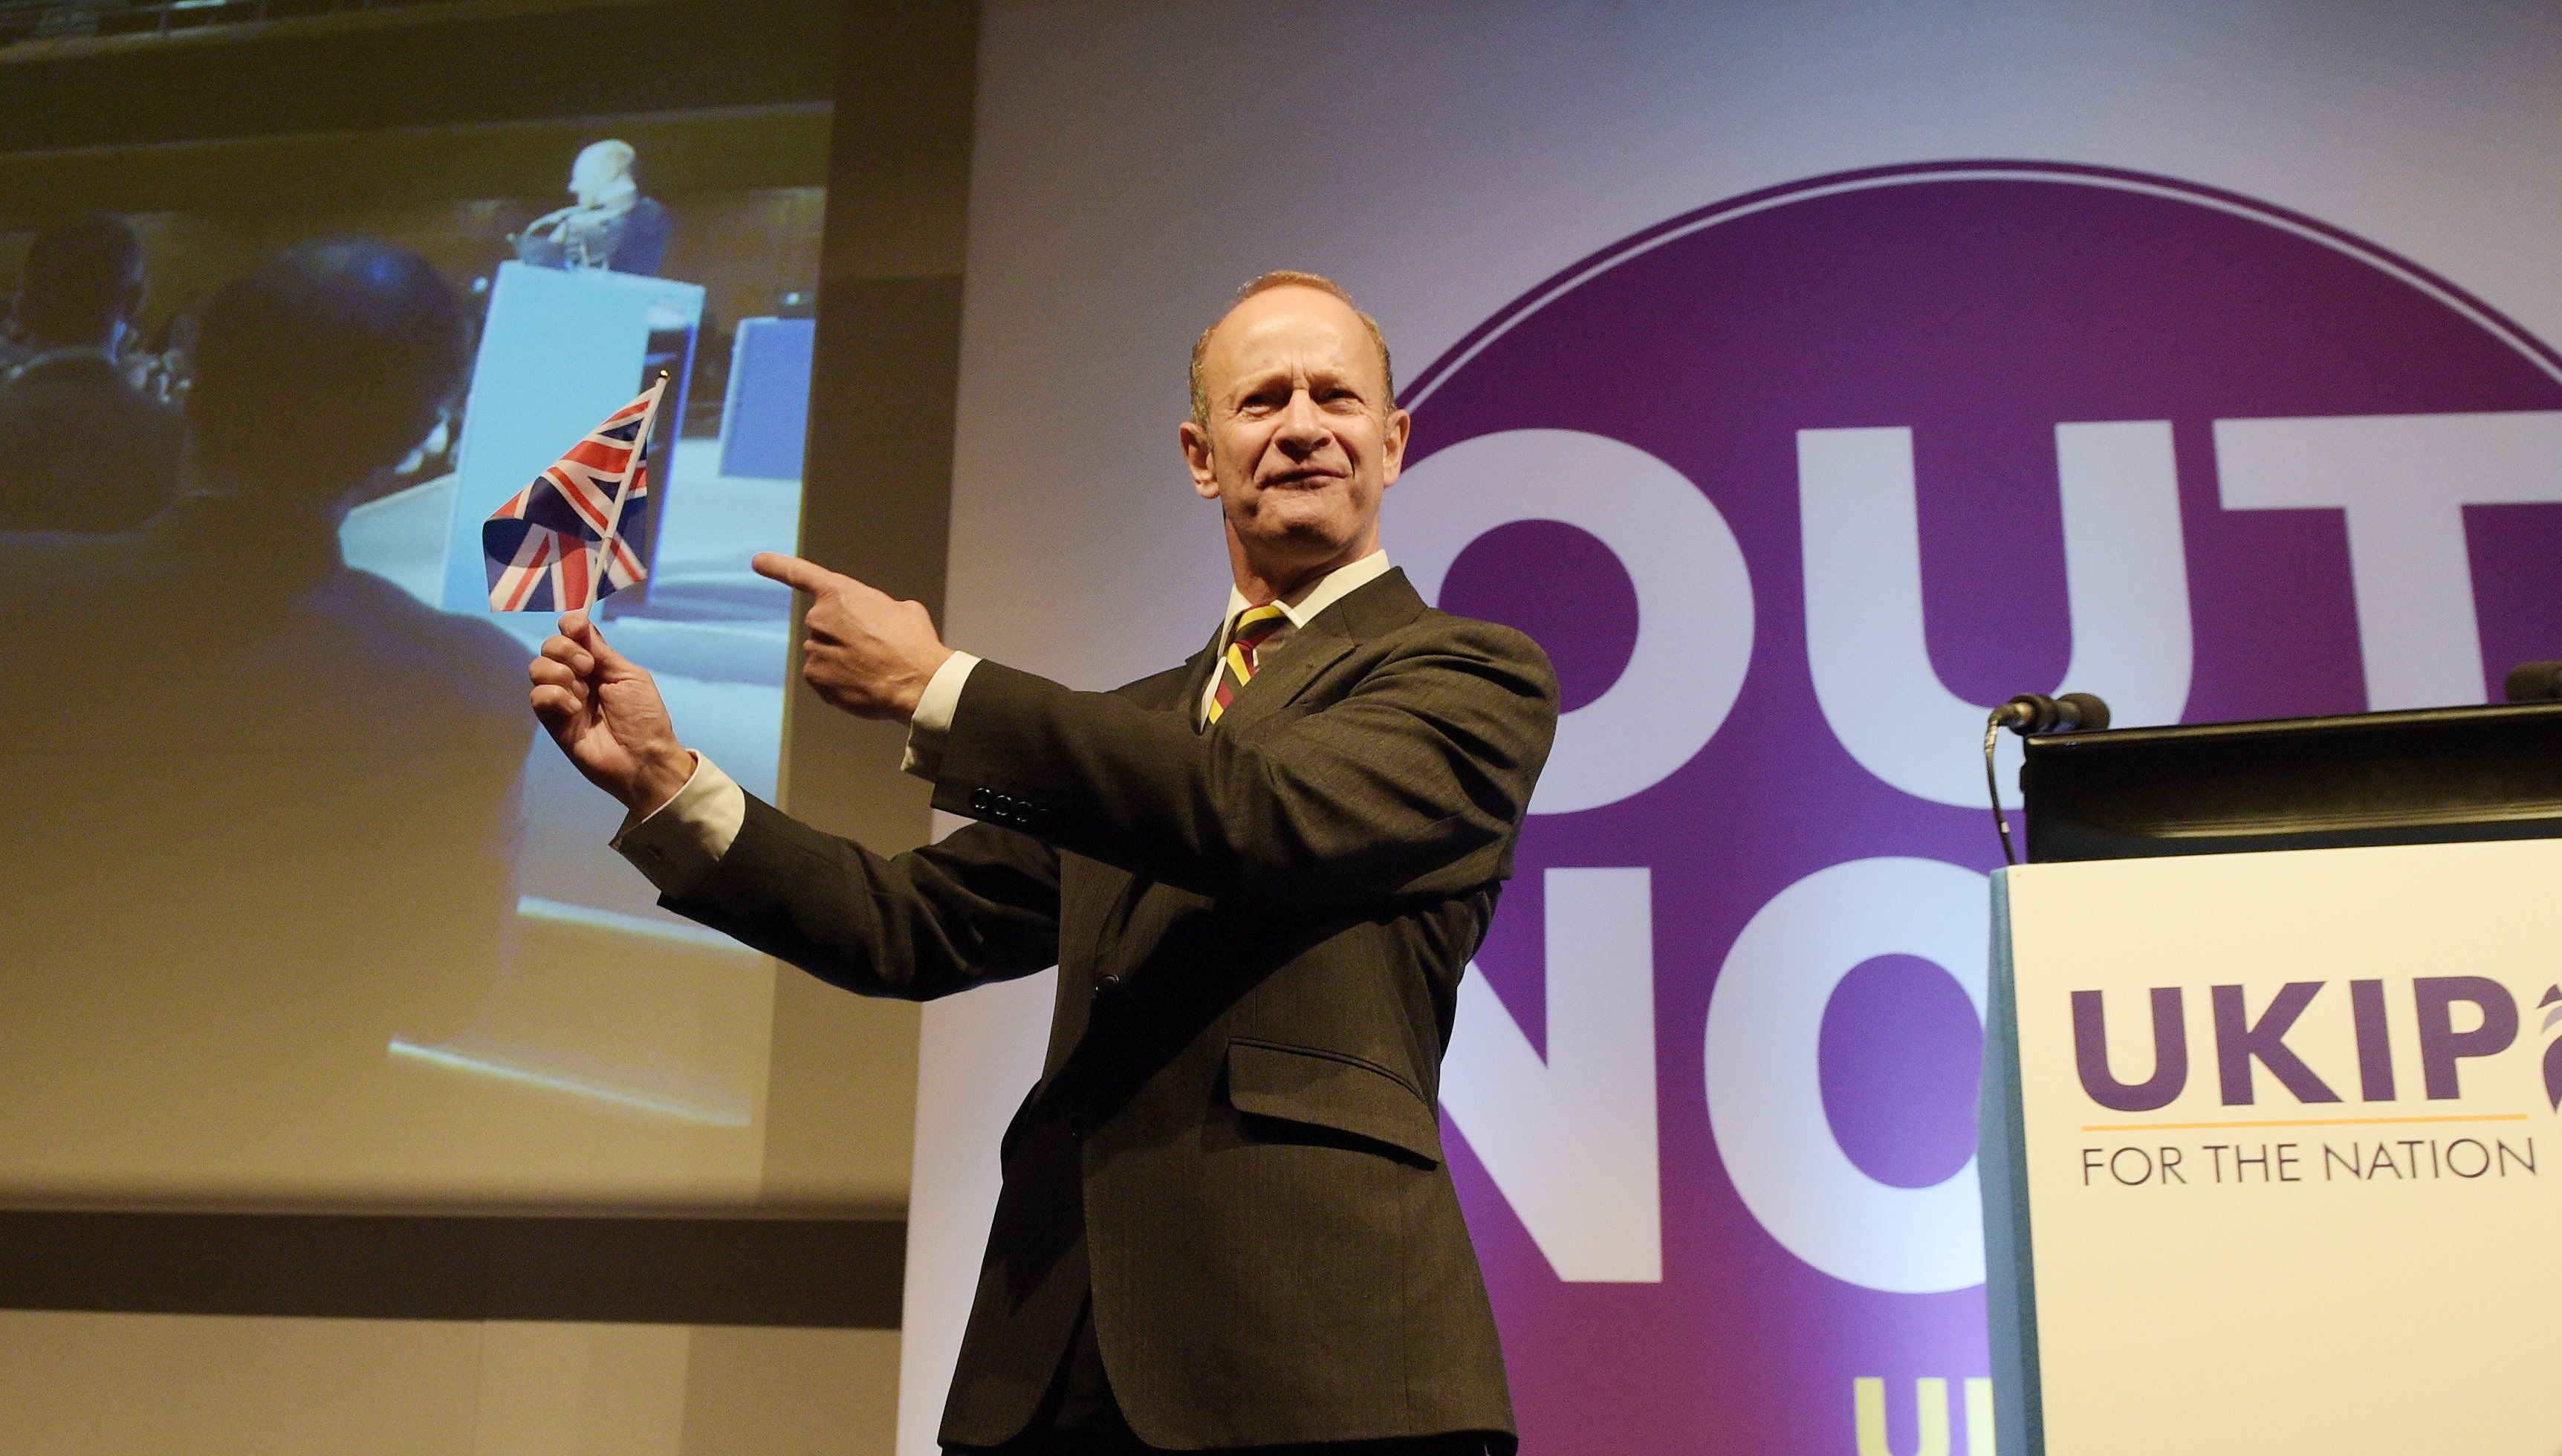 Ukip's New Leader In Bizarre 'Kill A Badger With Bare Hands'